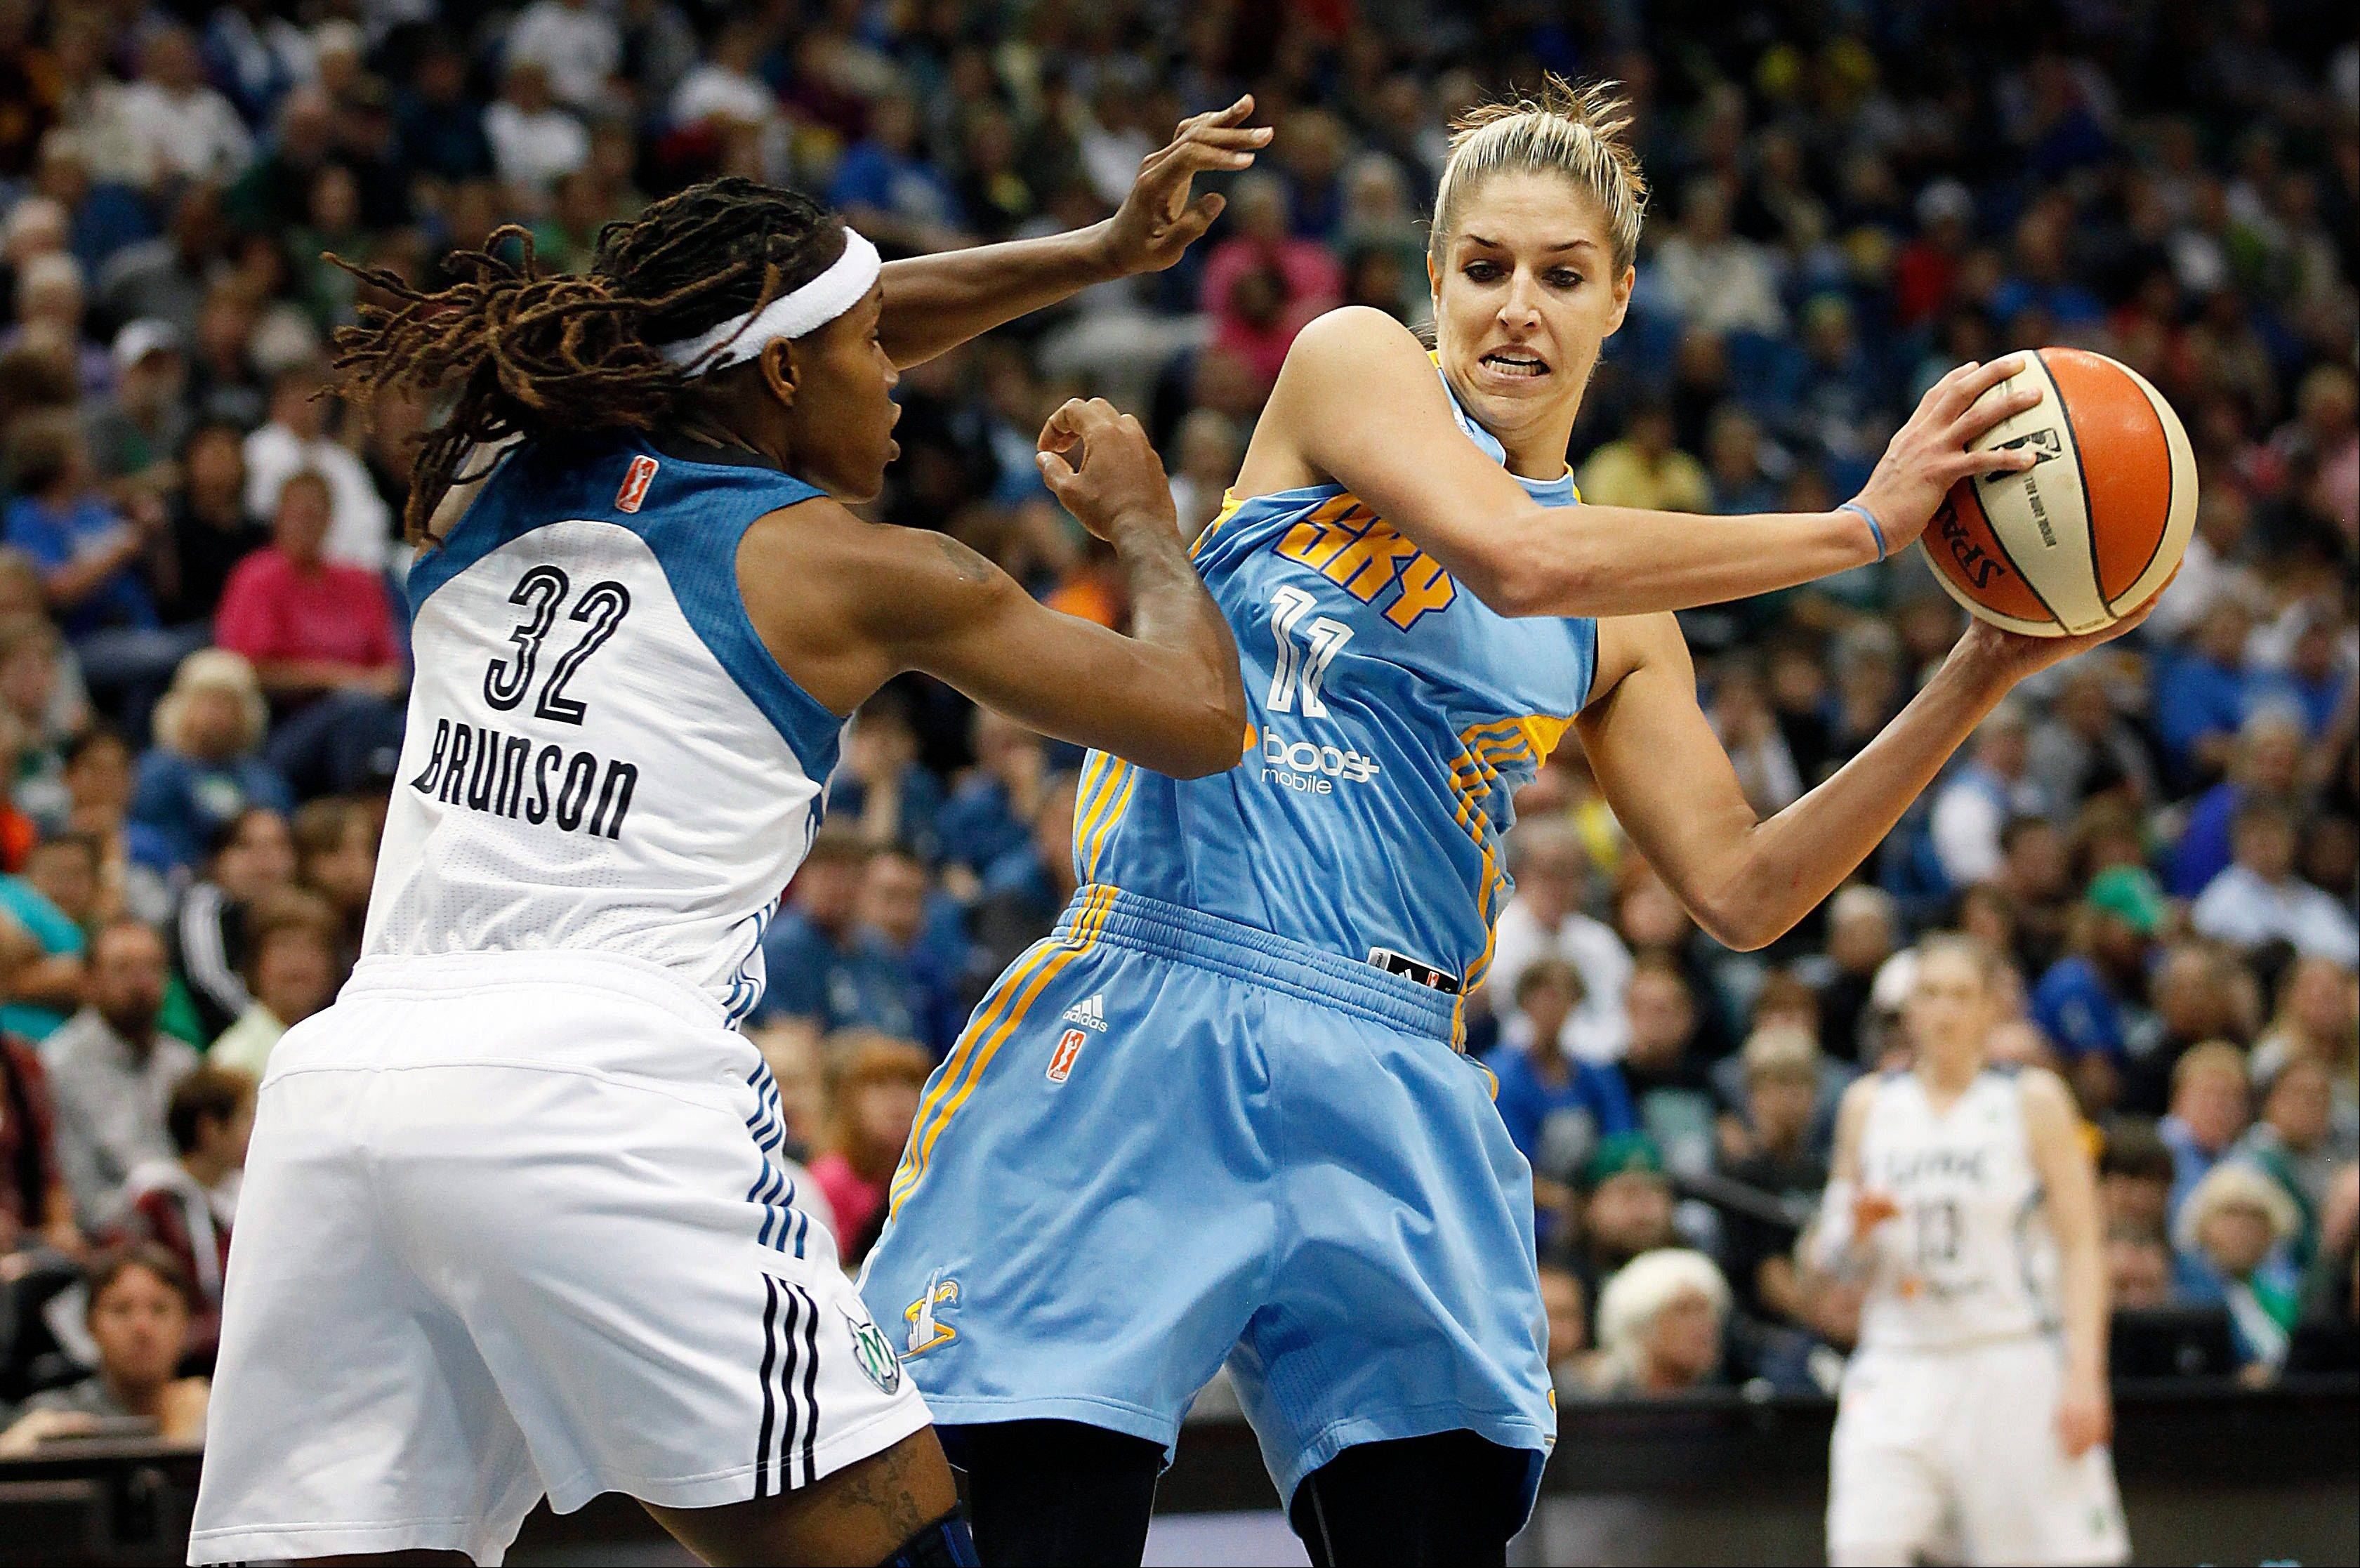 Chicago Sky rookie Elena Delle Donne (11) will open the WNBA playoffs Friday against the Indiana Fever at Allstate Arena. Delle Donne, Sylvia Fowles and Epiphanny Prince are the top three scorers for the Sky.